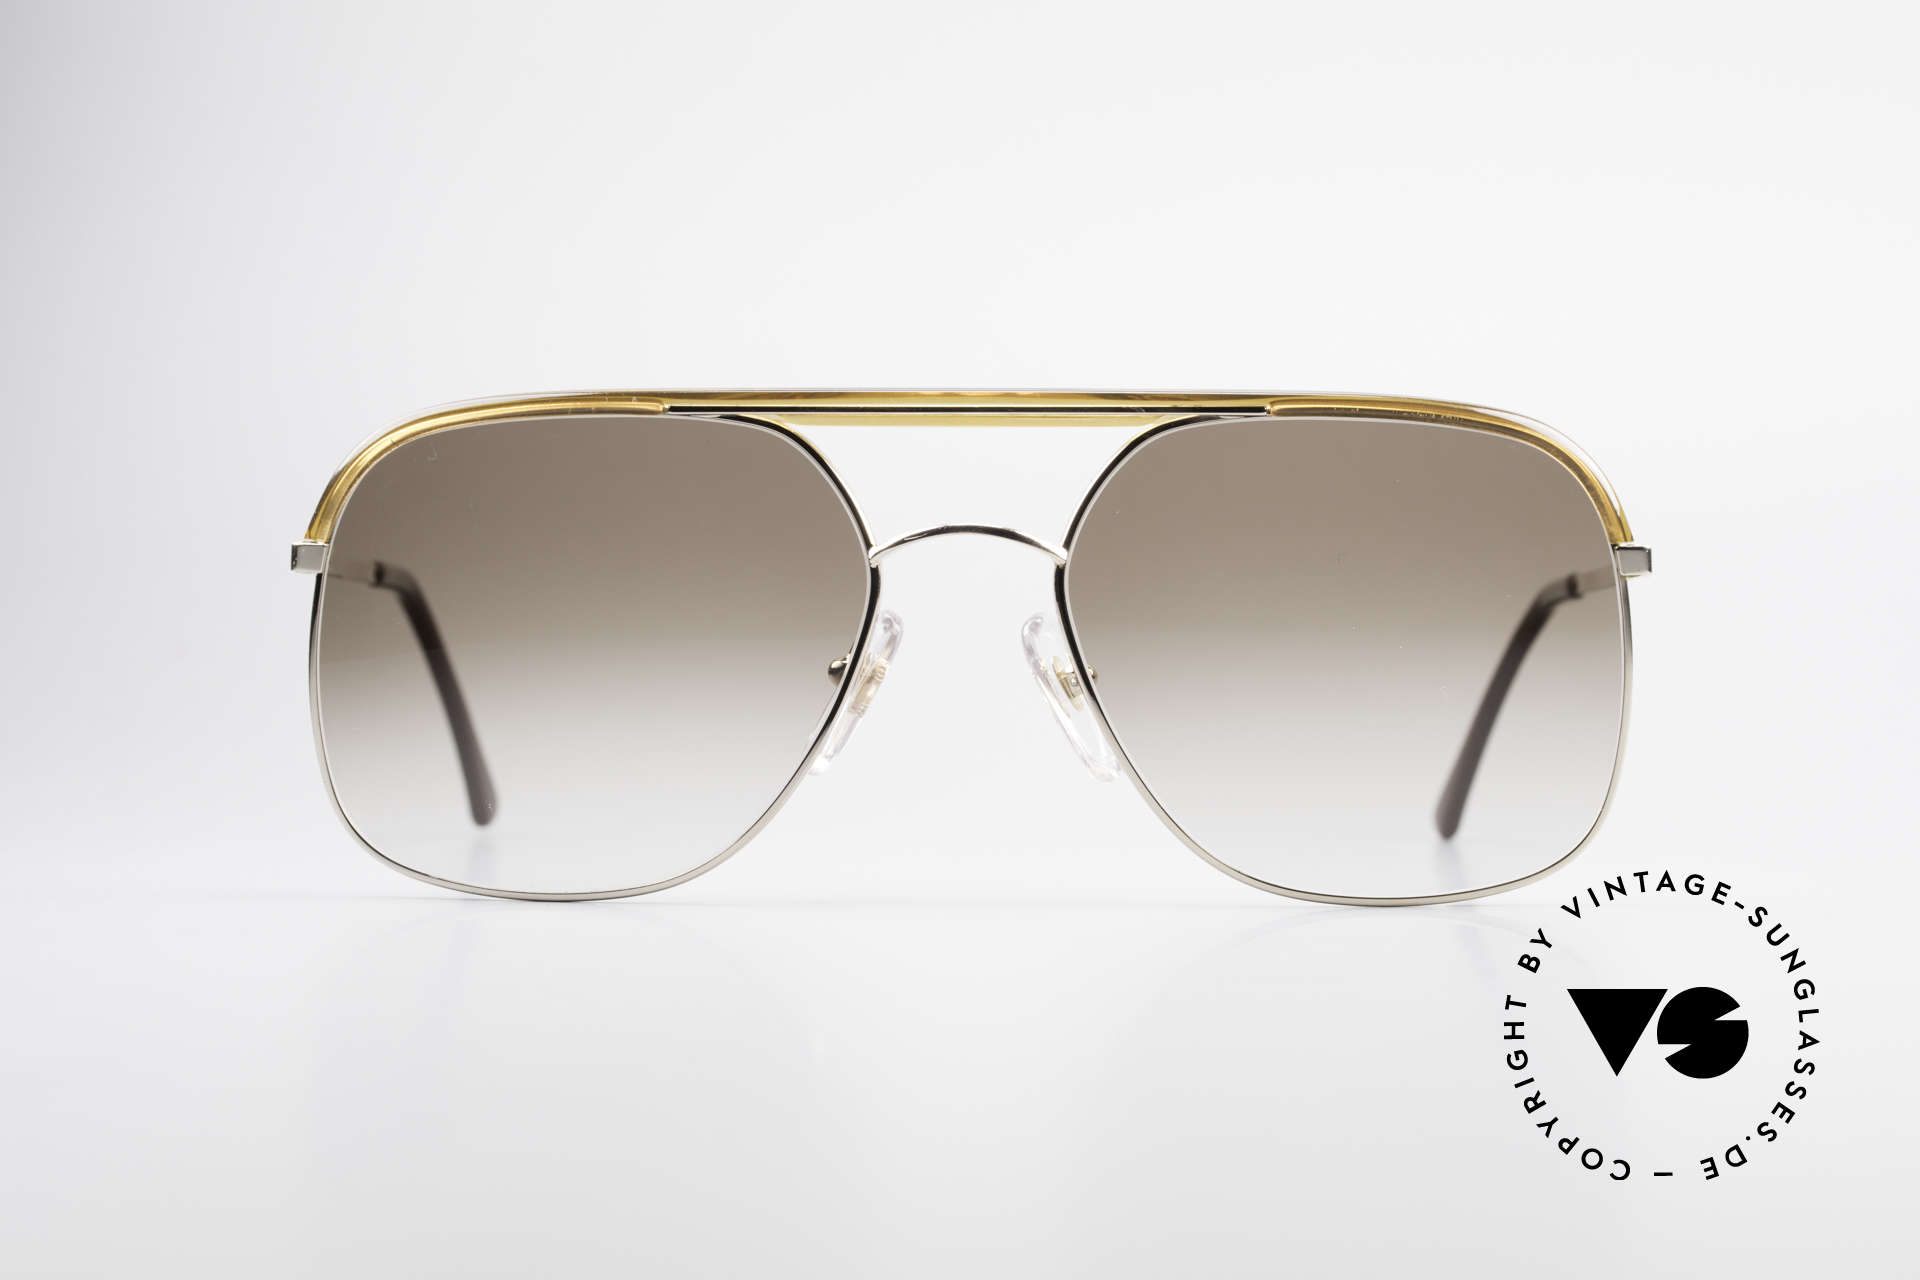 Christian Dior 2247 80's Men's Shades Vintage, tangible superior quality & 1st class comfort from 1984, Made for Men